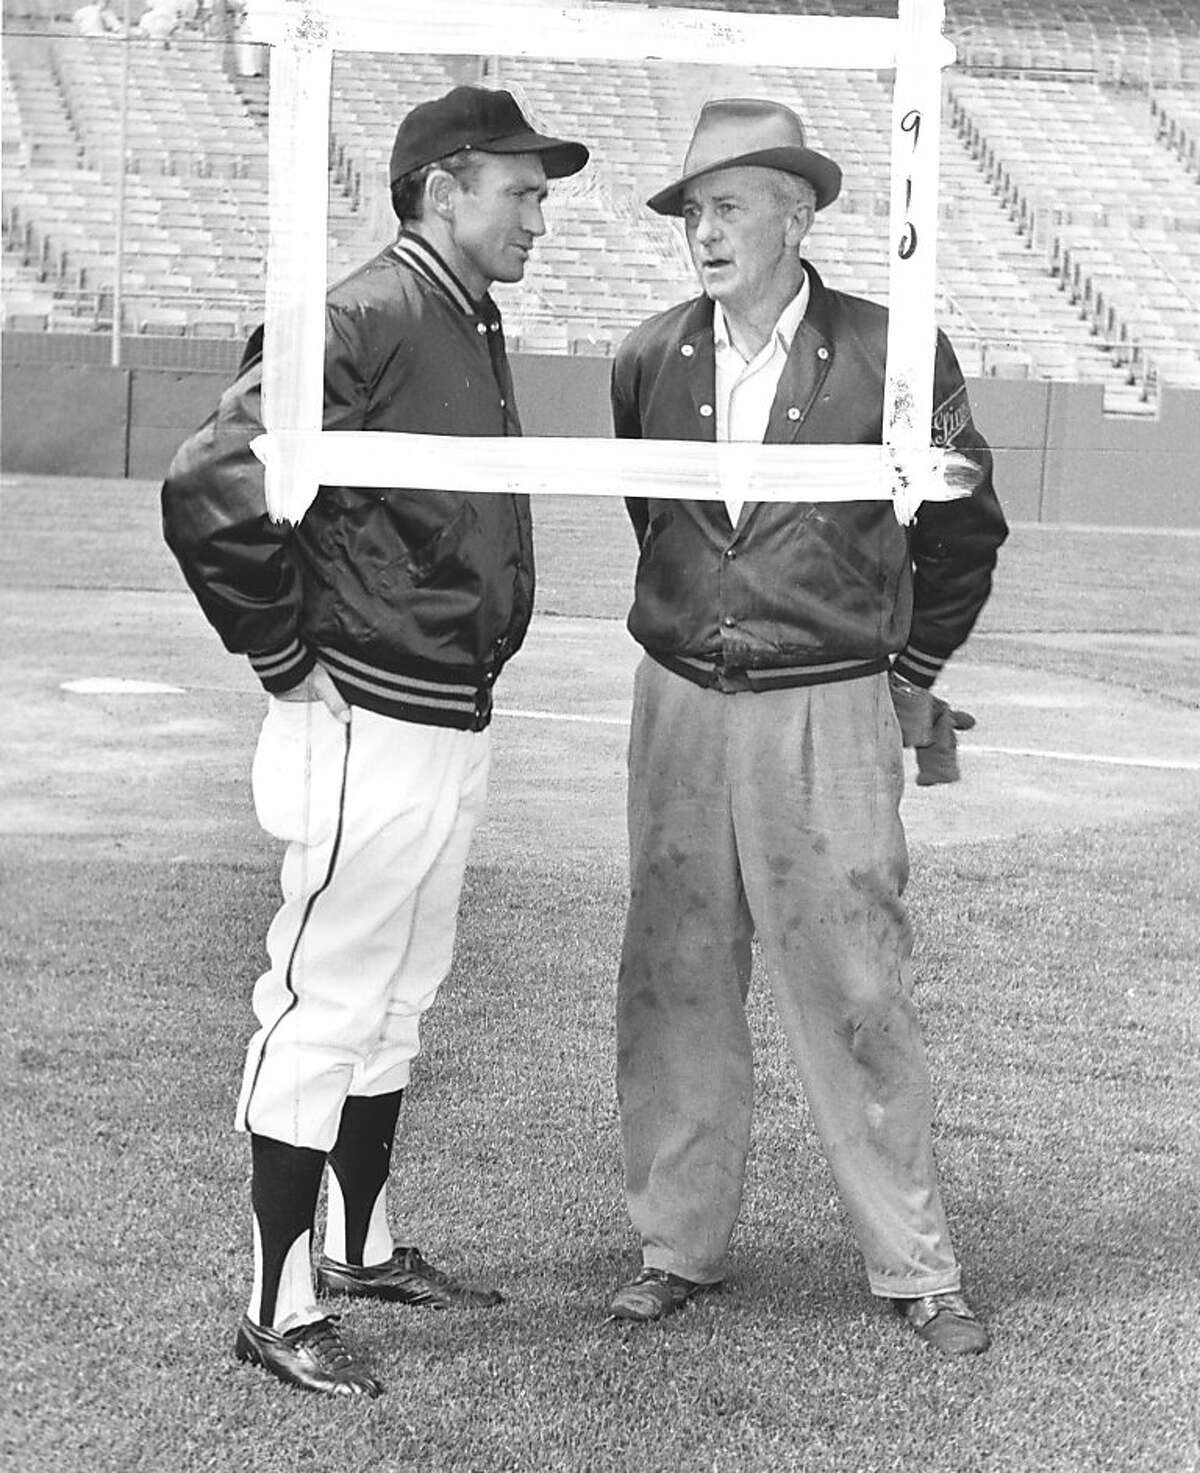 4/16/63- San Francisco Giants Manager Alvin Dark (L) chats with Giants groundskeeper Matty Schwab as the pair check the field at Candlestick Park her 4/16 just before the Giants home opener.